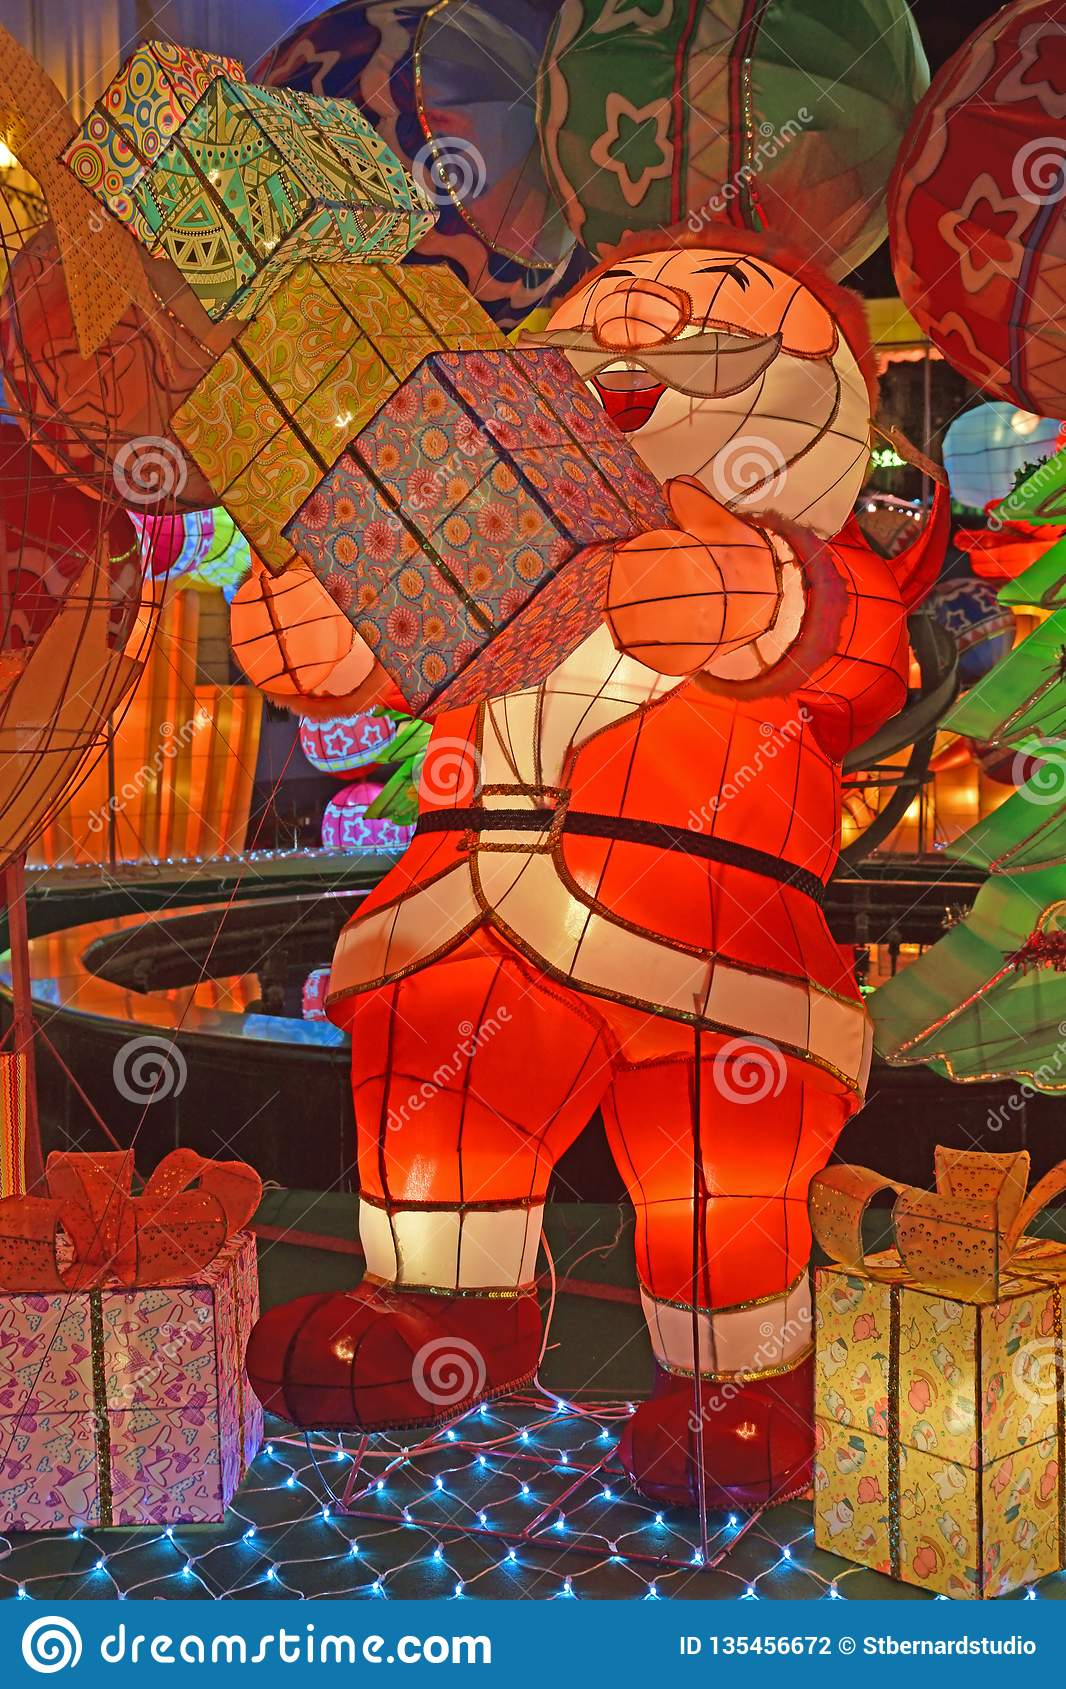 Colorful light decoration of Santa Claus laughing looking happy carrying piles of gift boxes